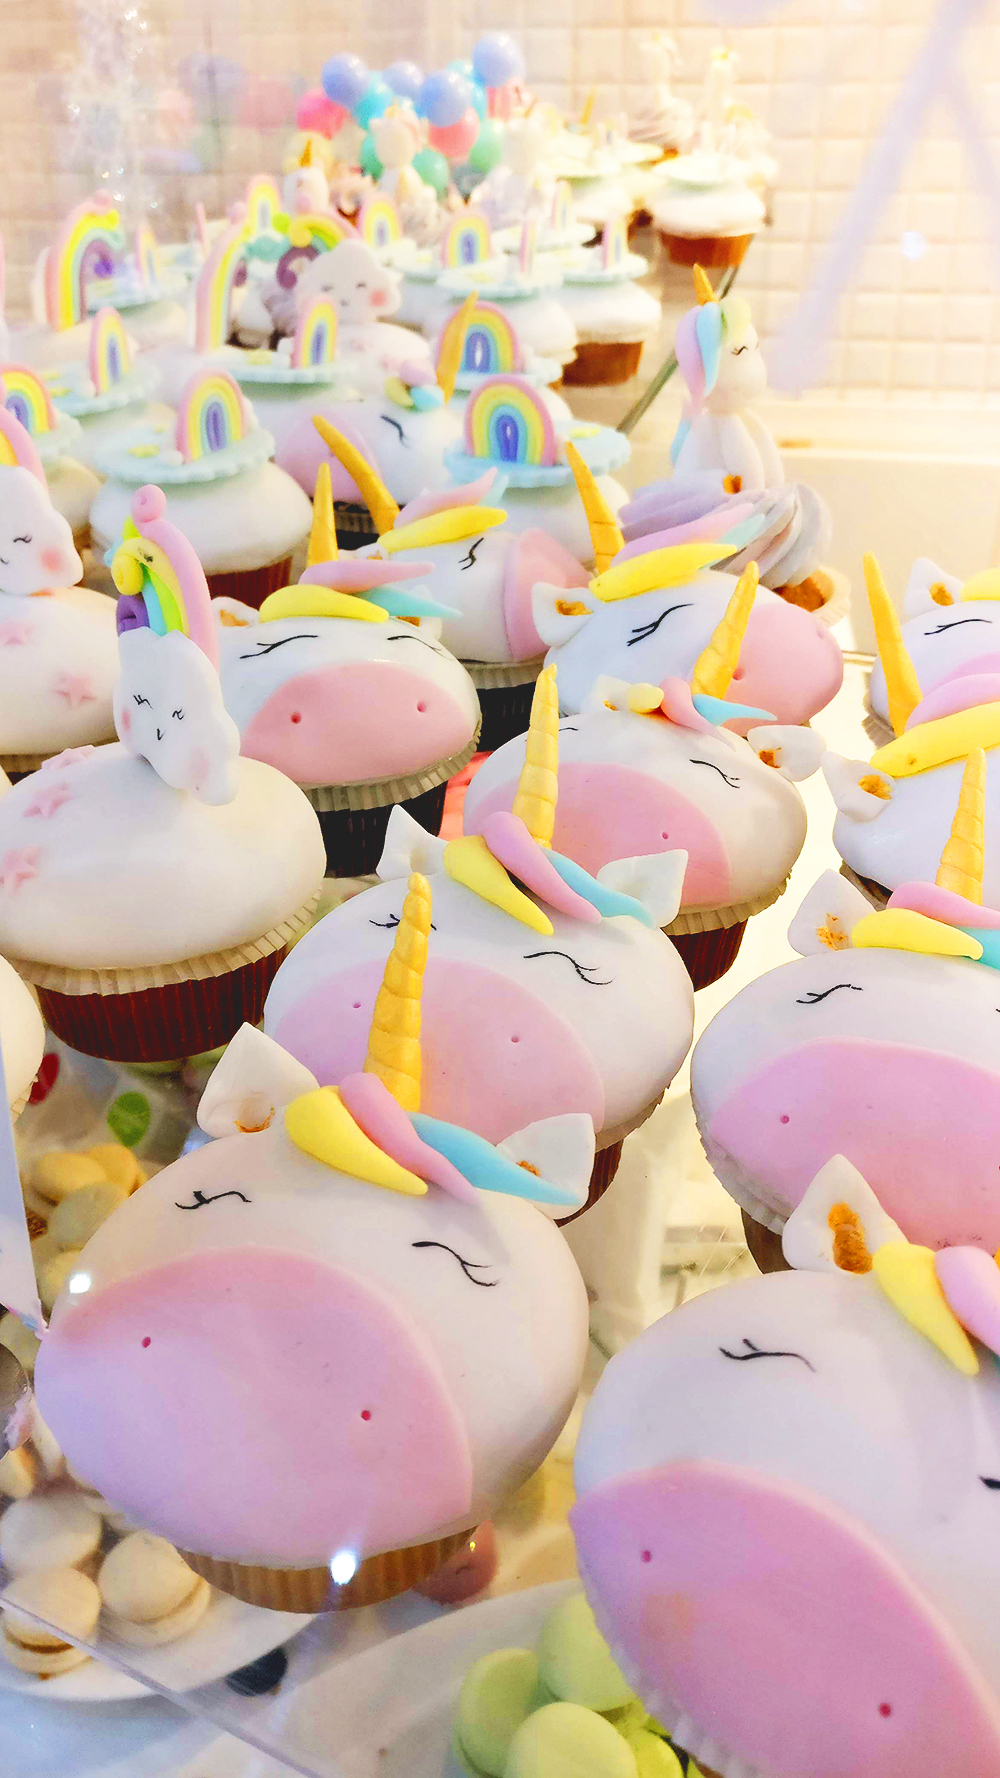 Unicorn cupcake - Unicorn days in Sugar shop - Unicorn and rainbow food guide to Budapest, Hungary | Aliz's Wonderland #unicorn #unicornfood #budapest #rainbowfood #budapestfood